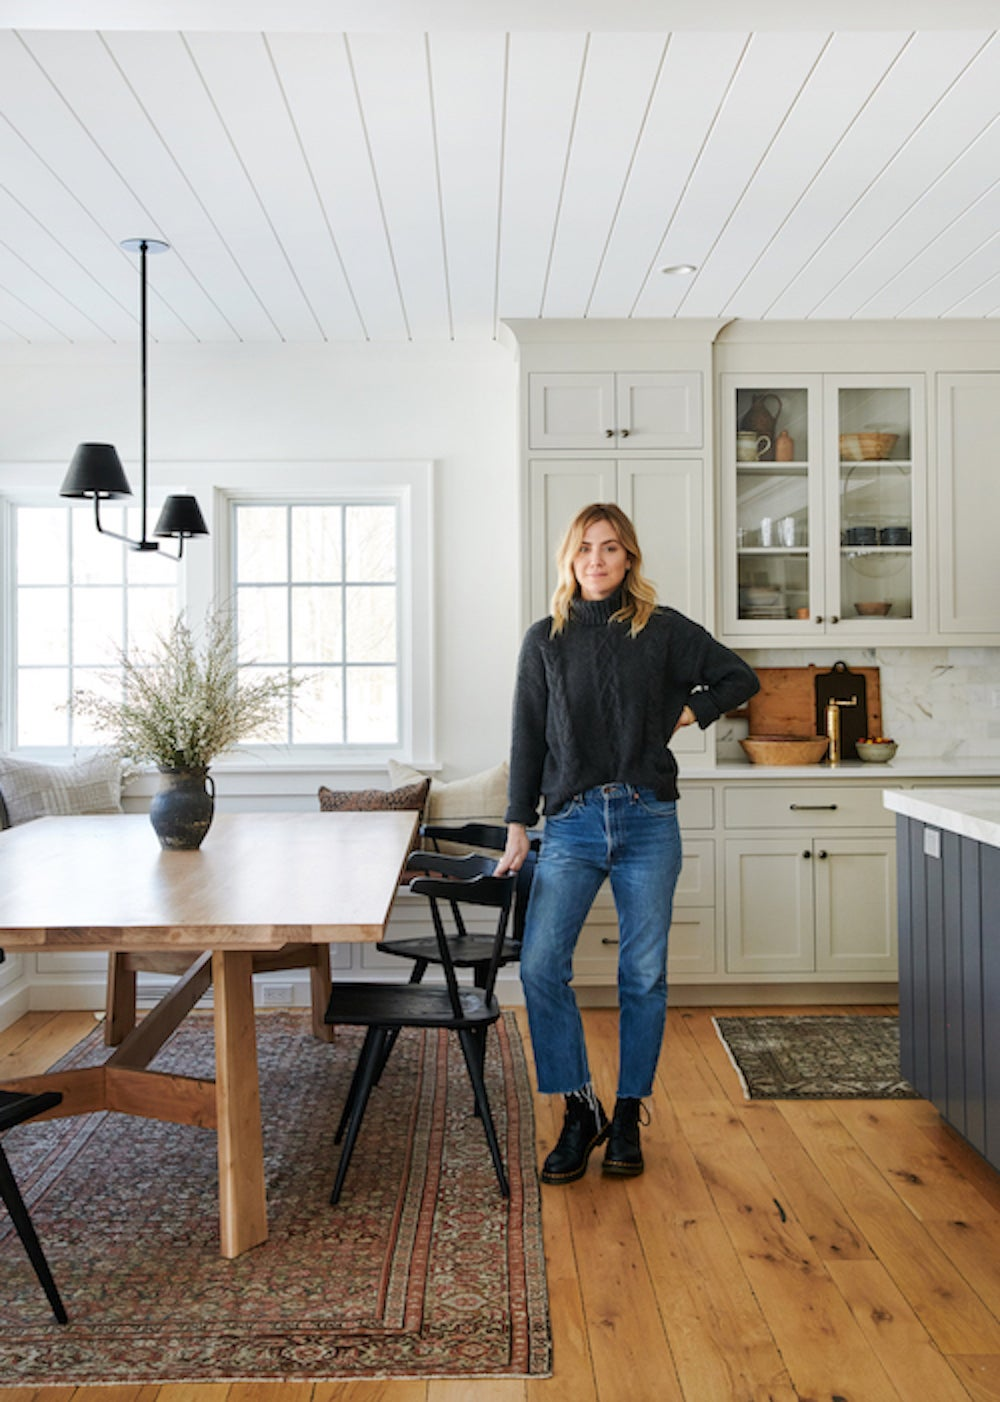 How to Choose the Right White Paint, According to Amber Lewis